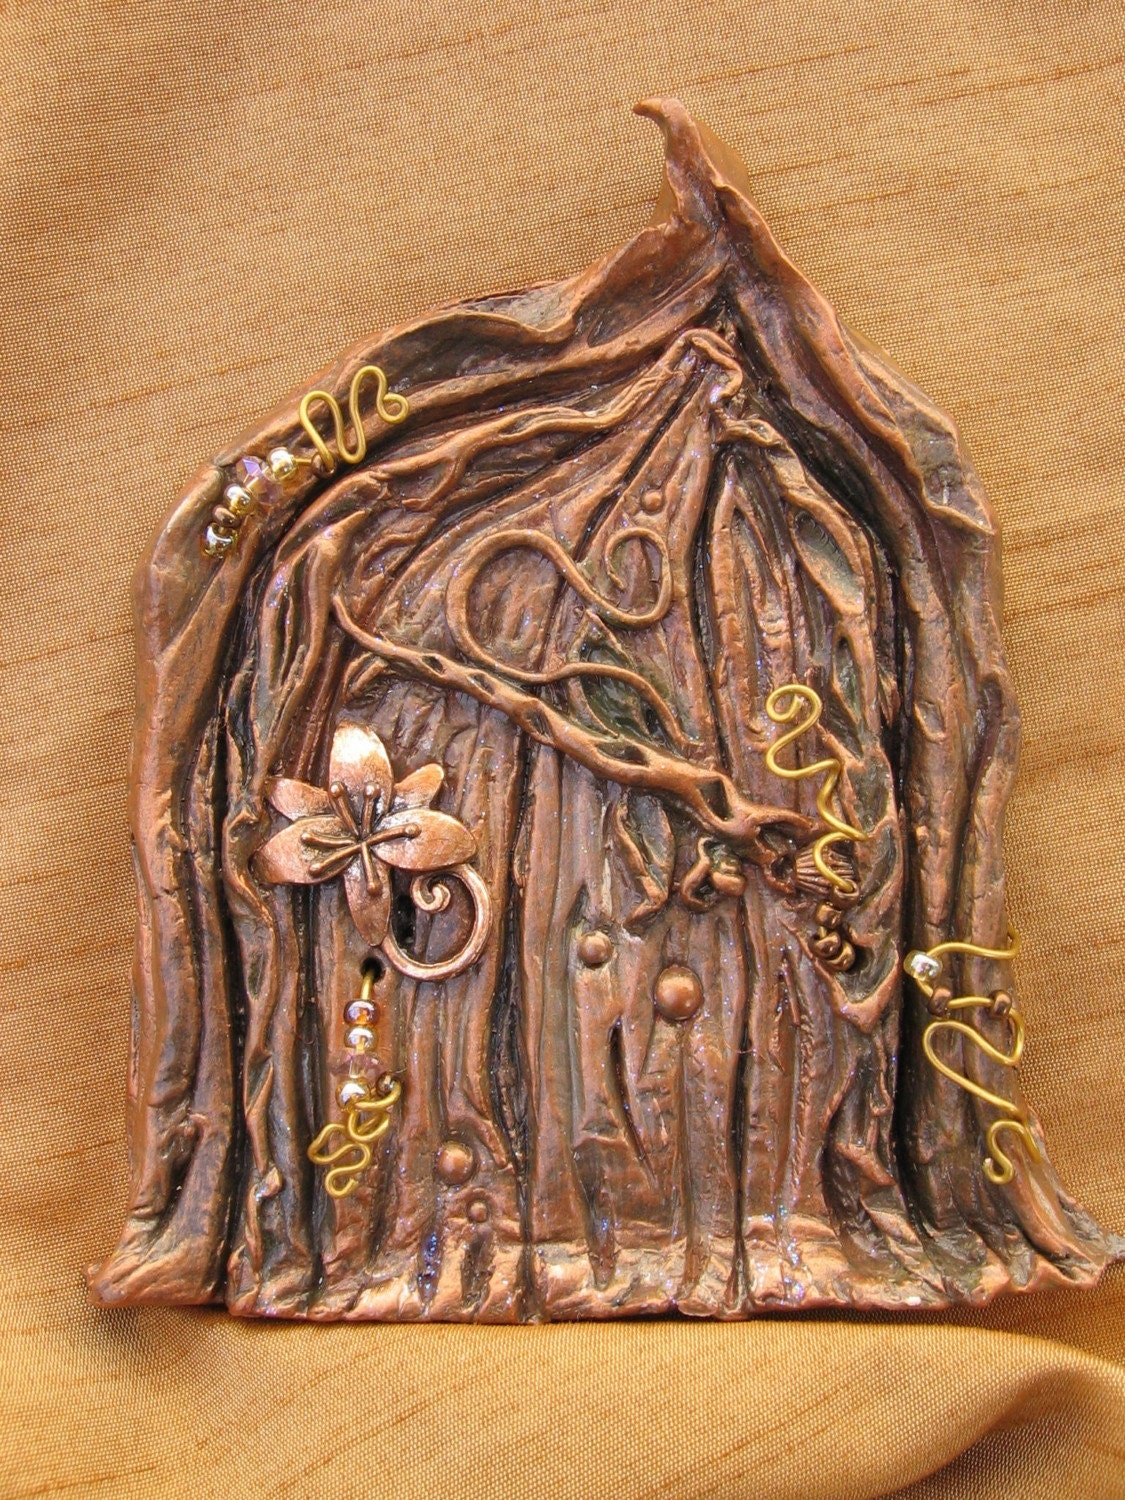 Faerie secrets woods door How to make a fairy door out of clay